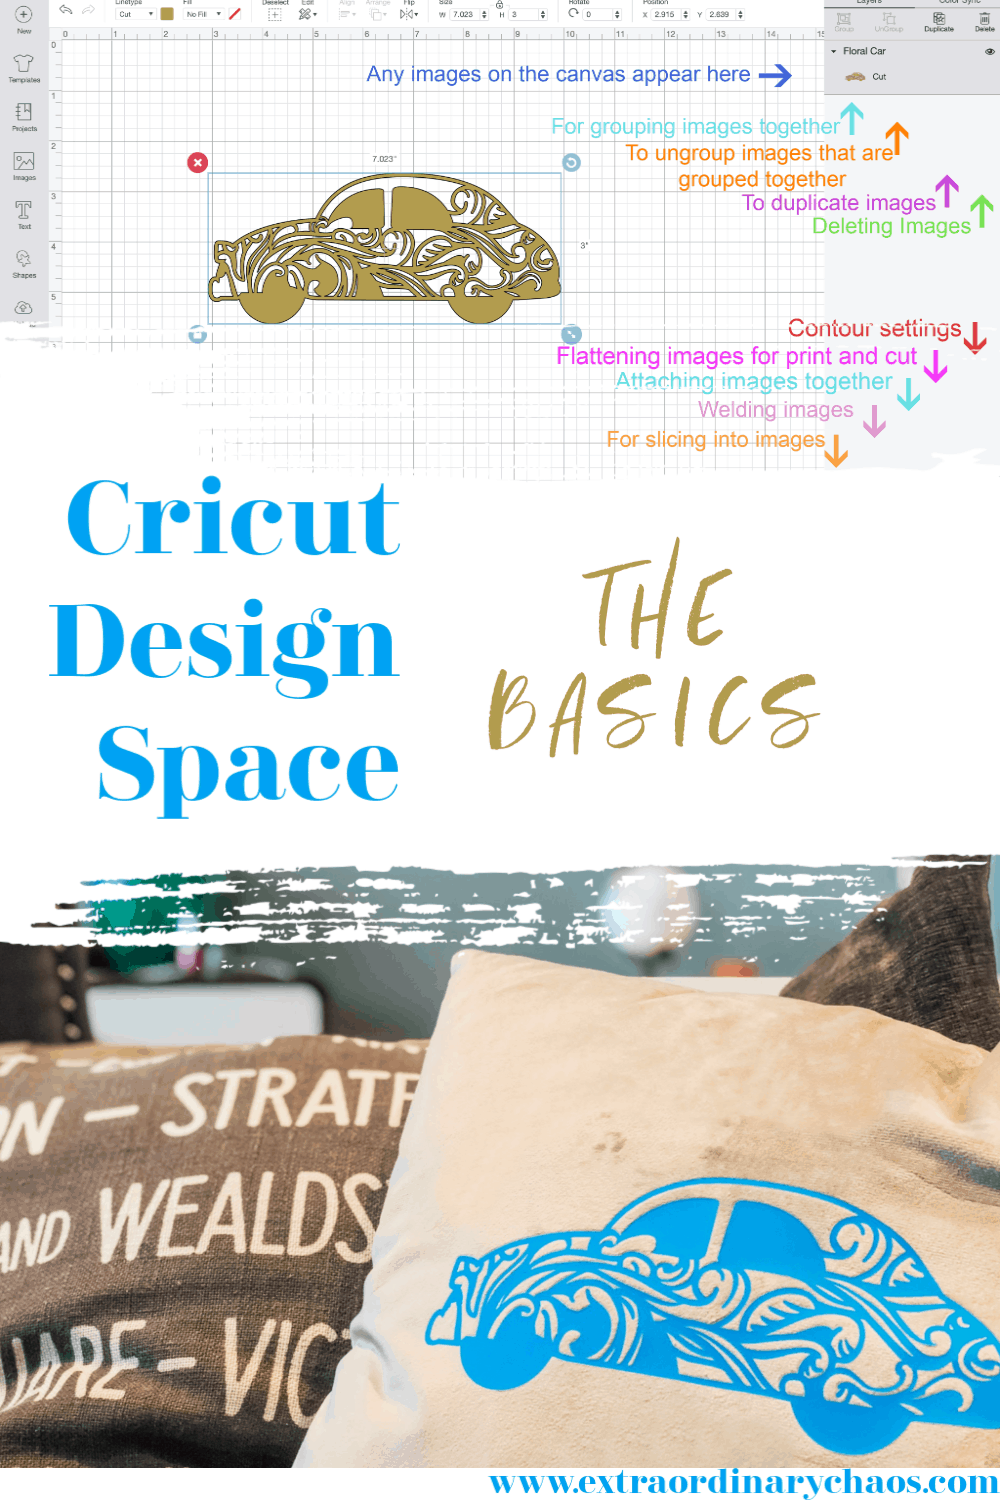 Cricut Design Space The Basics, How to use the Design Space Dashboard for Beginners